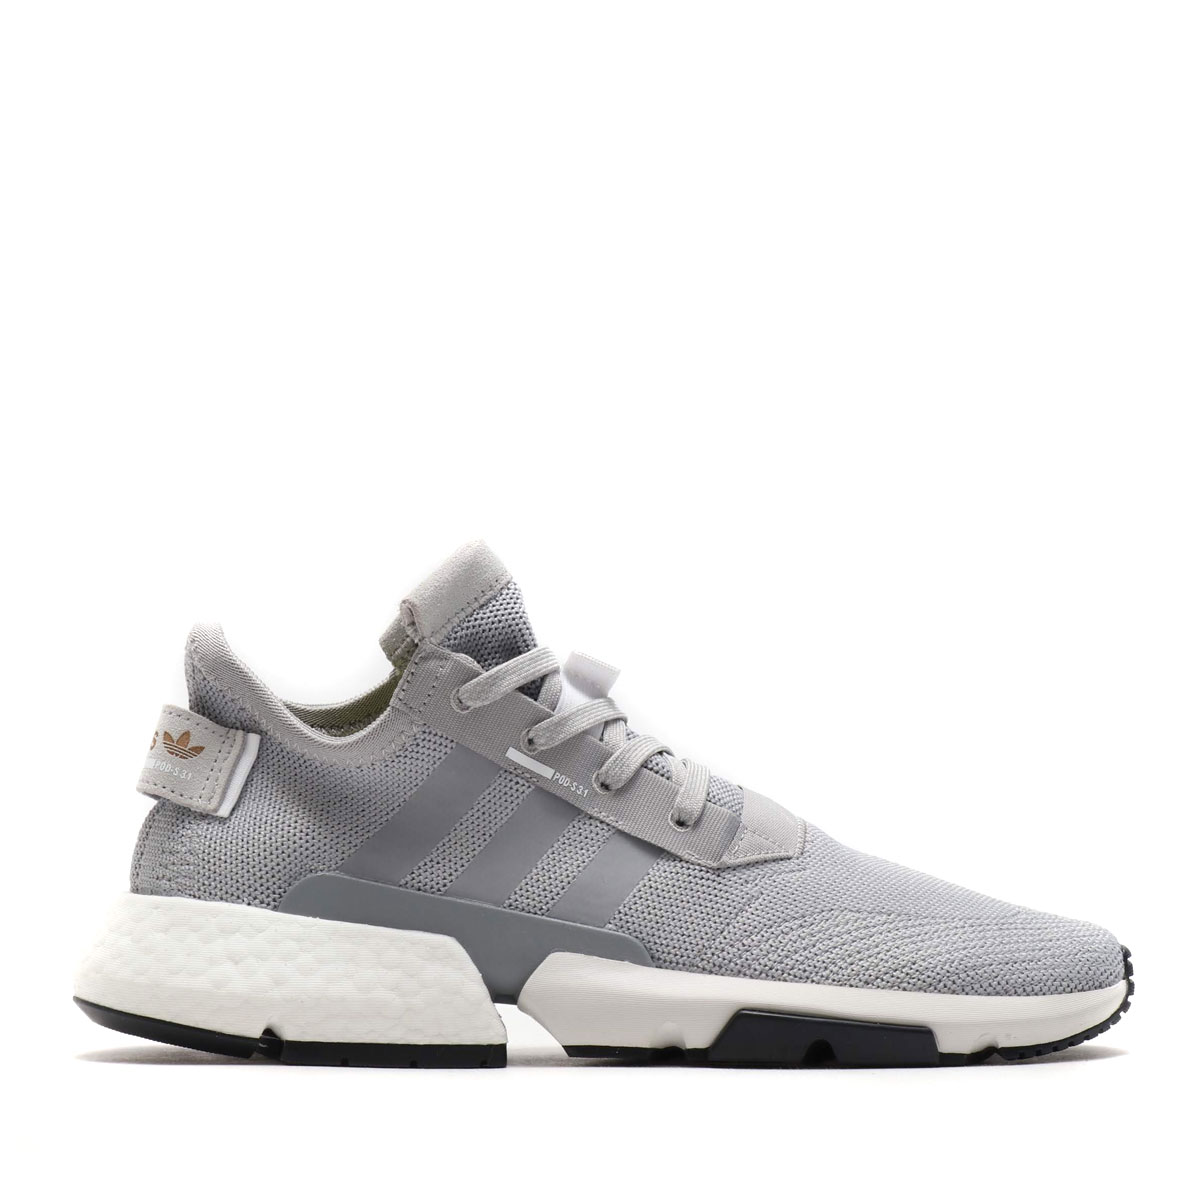 adidas Originals POD-S3.1(GREY TWO/GREY TWO/REFLECTIVE SILVER)(アディダスオリジナルス POD-S3.1)【メンズ】【スニーカー】【19SS-I】